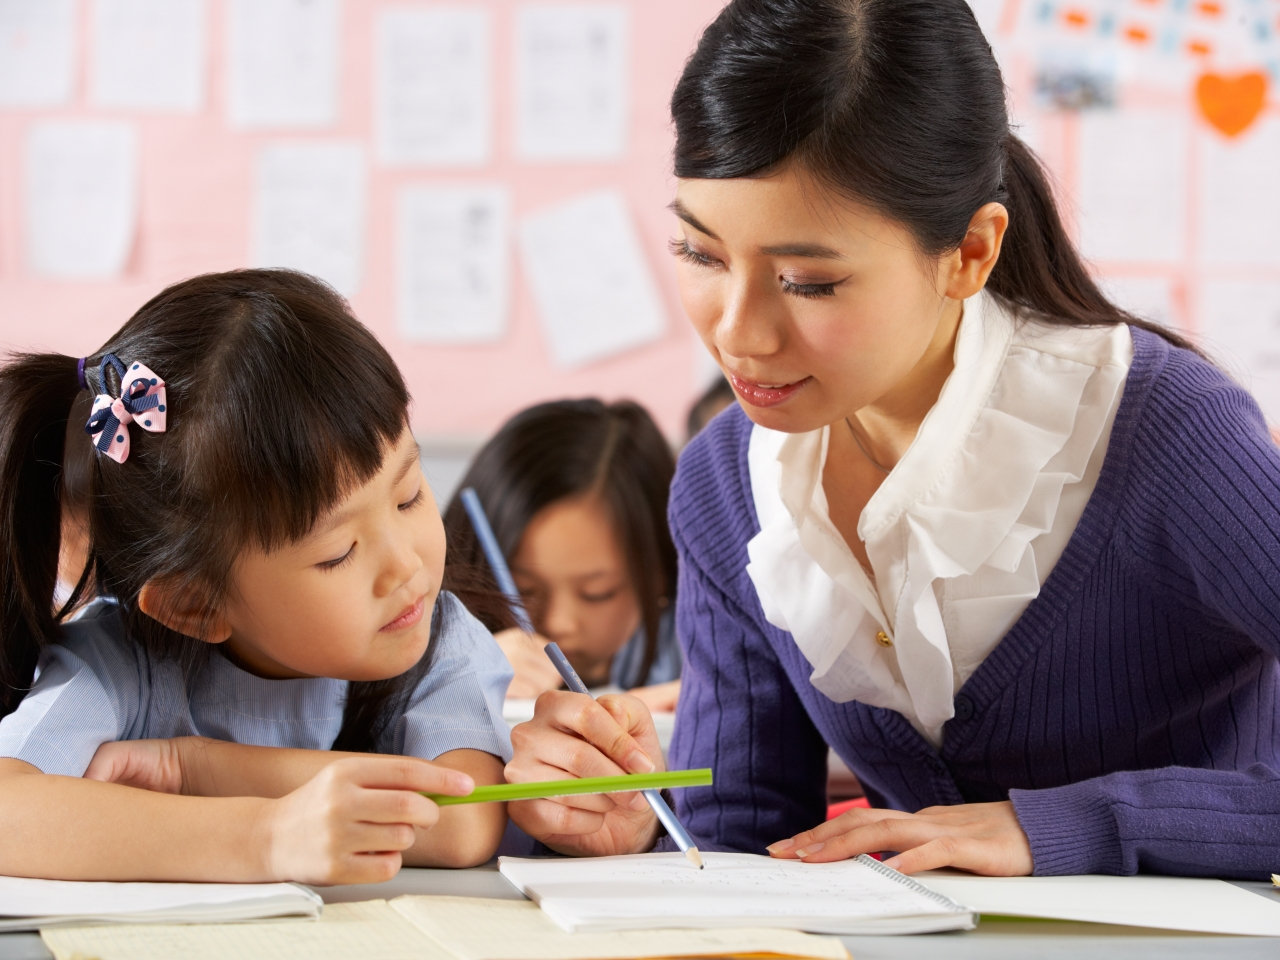 Most teachers who told a survey that they want to quit have cited political pressure as a major reason. Image: Shutterstock